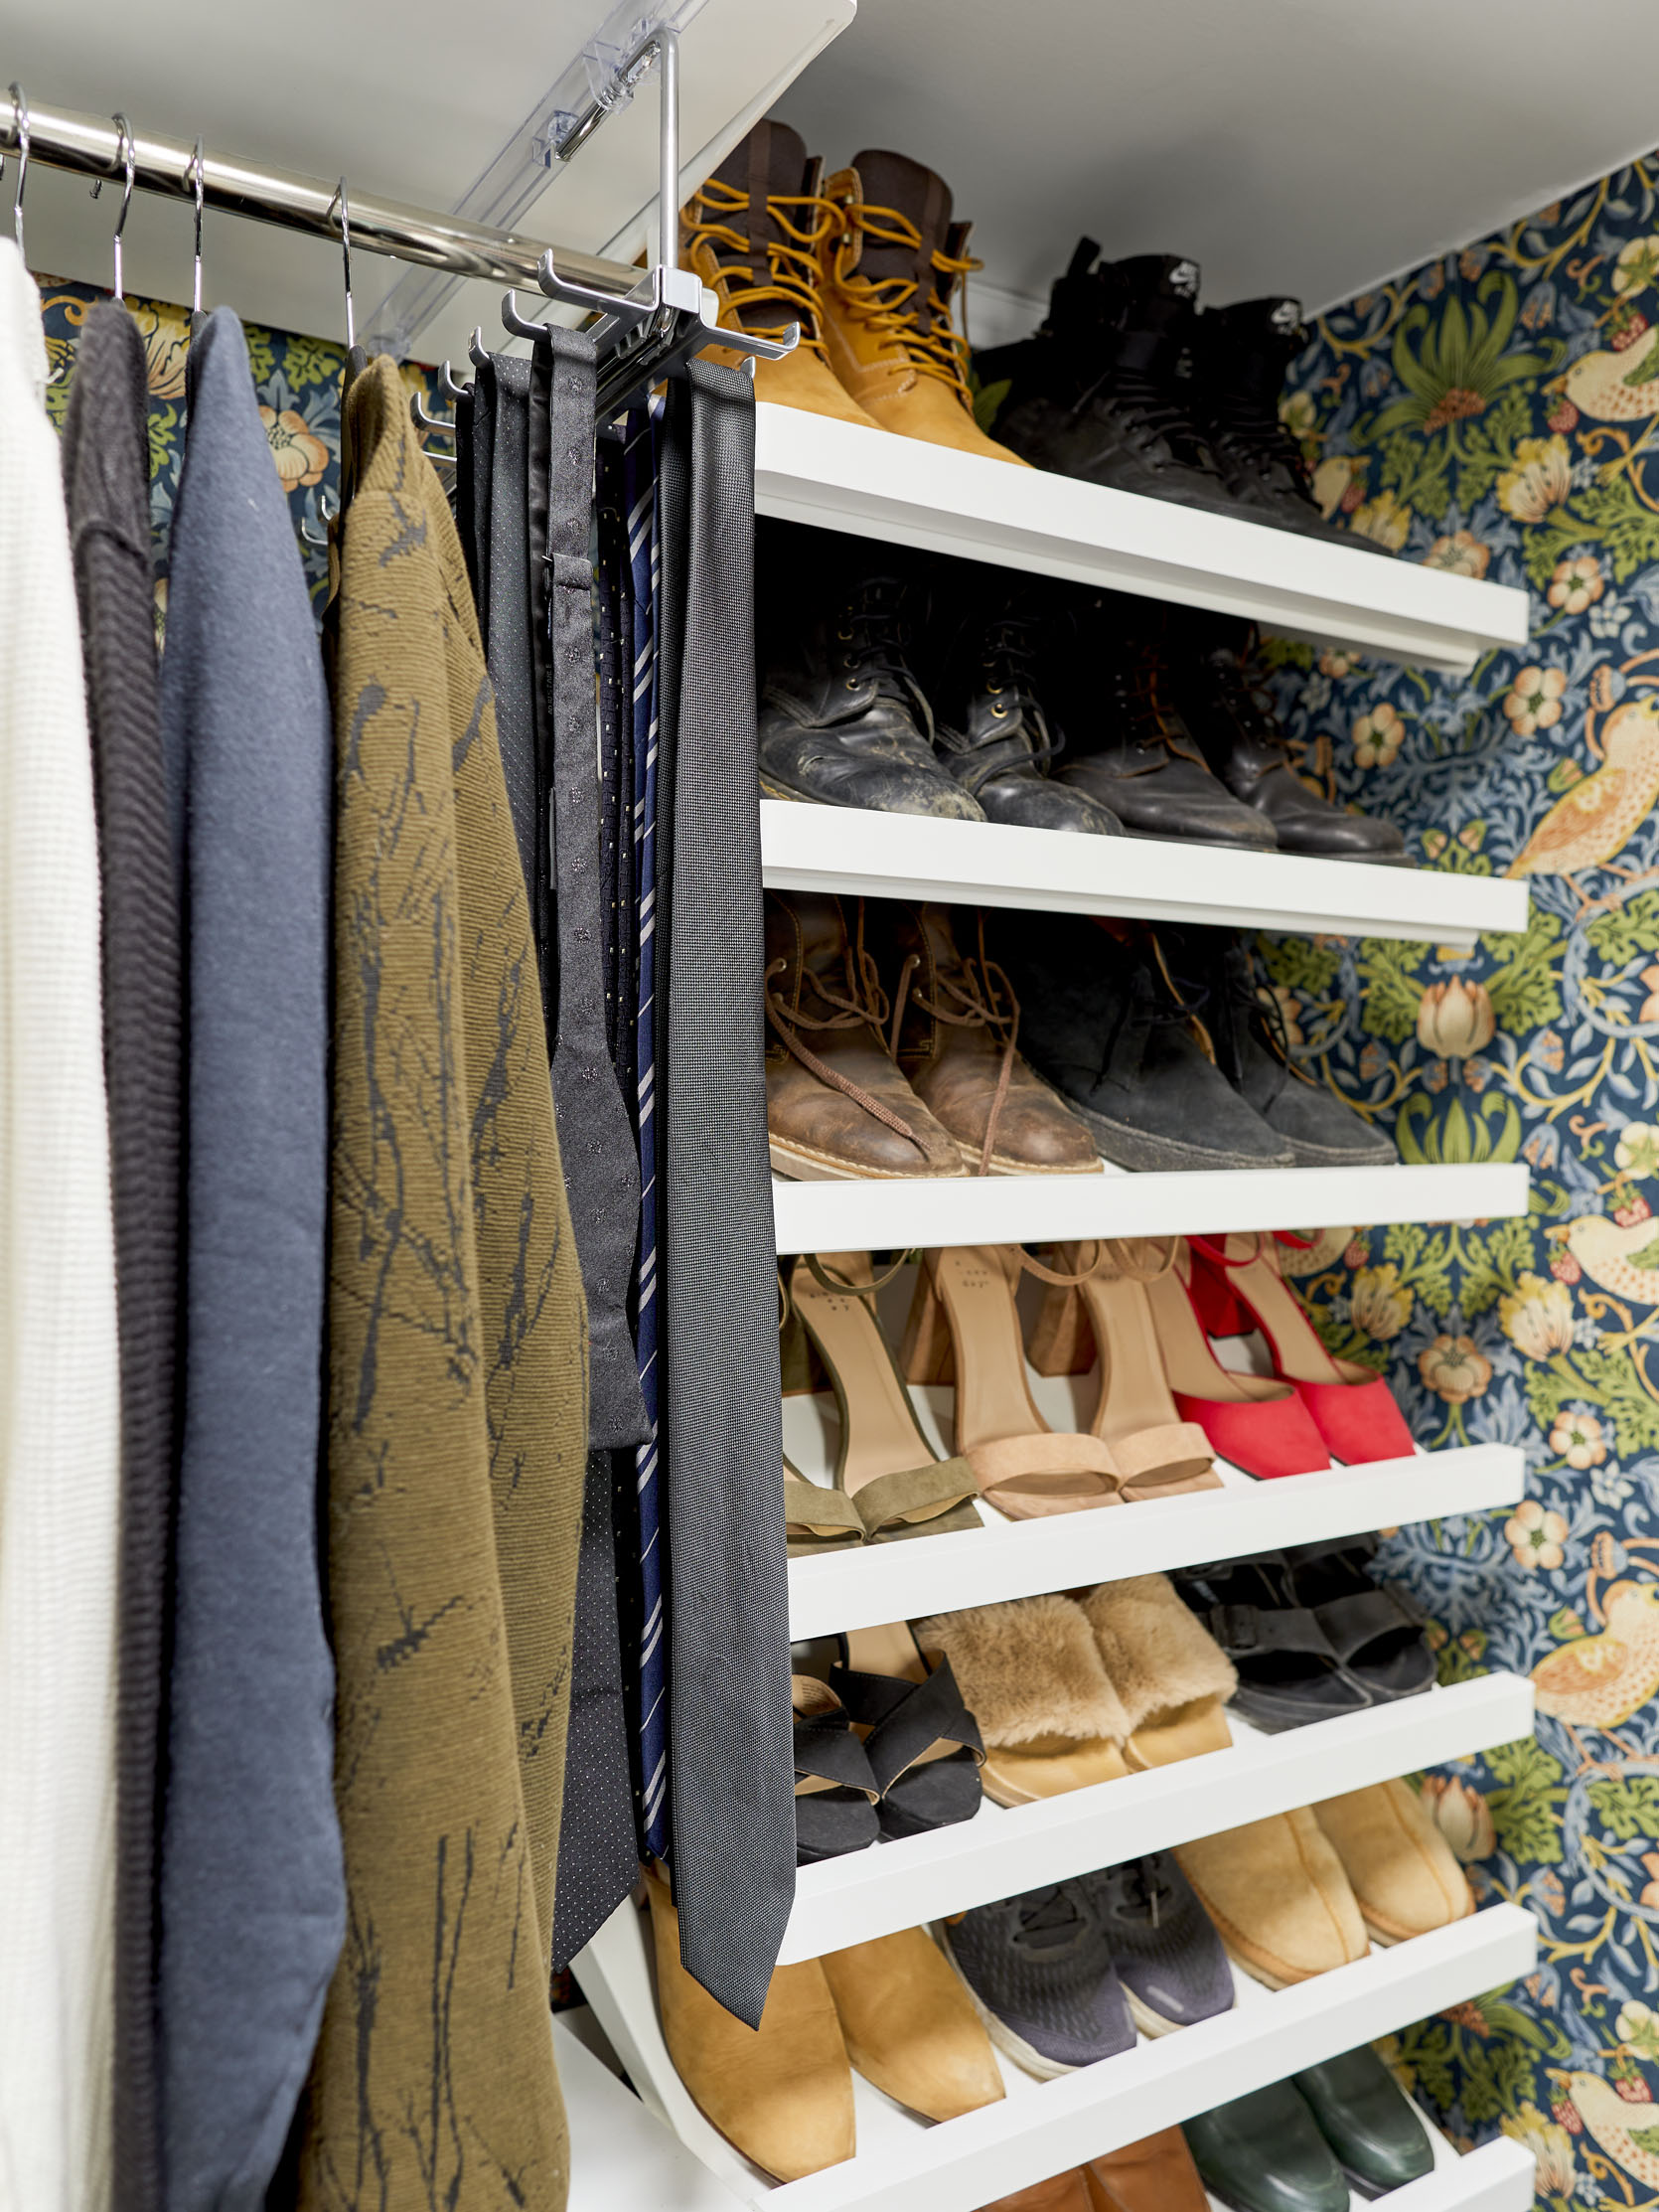 Sara S Closet Reveal The Bold Design Moment She S Been Craving Emily Henderson